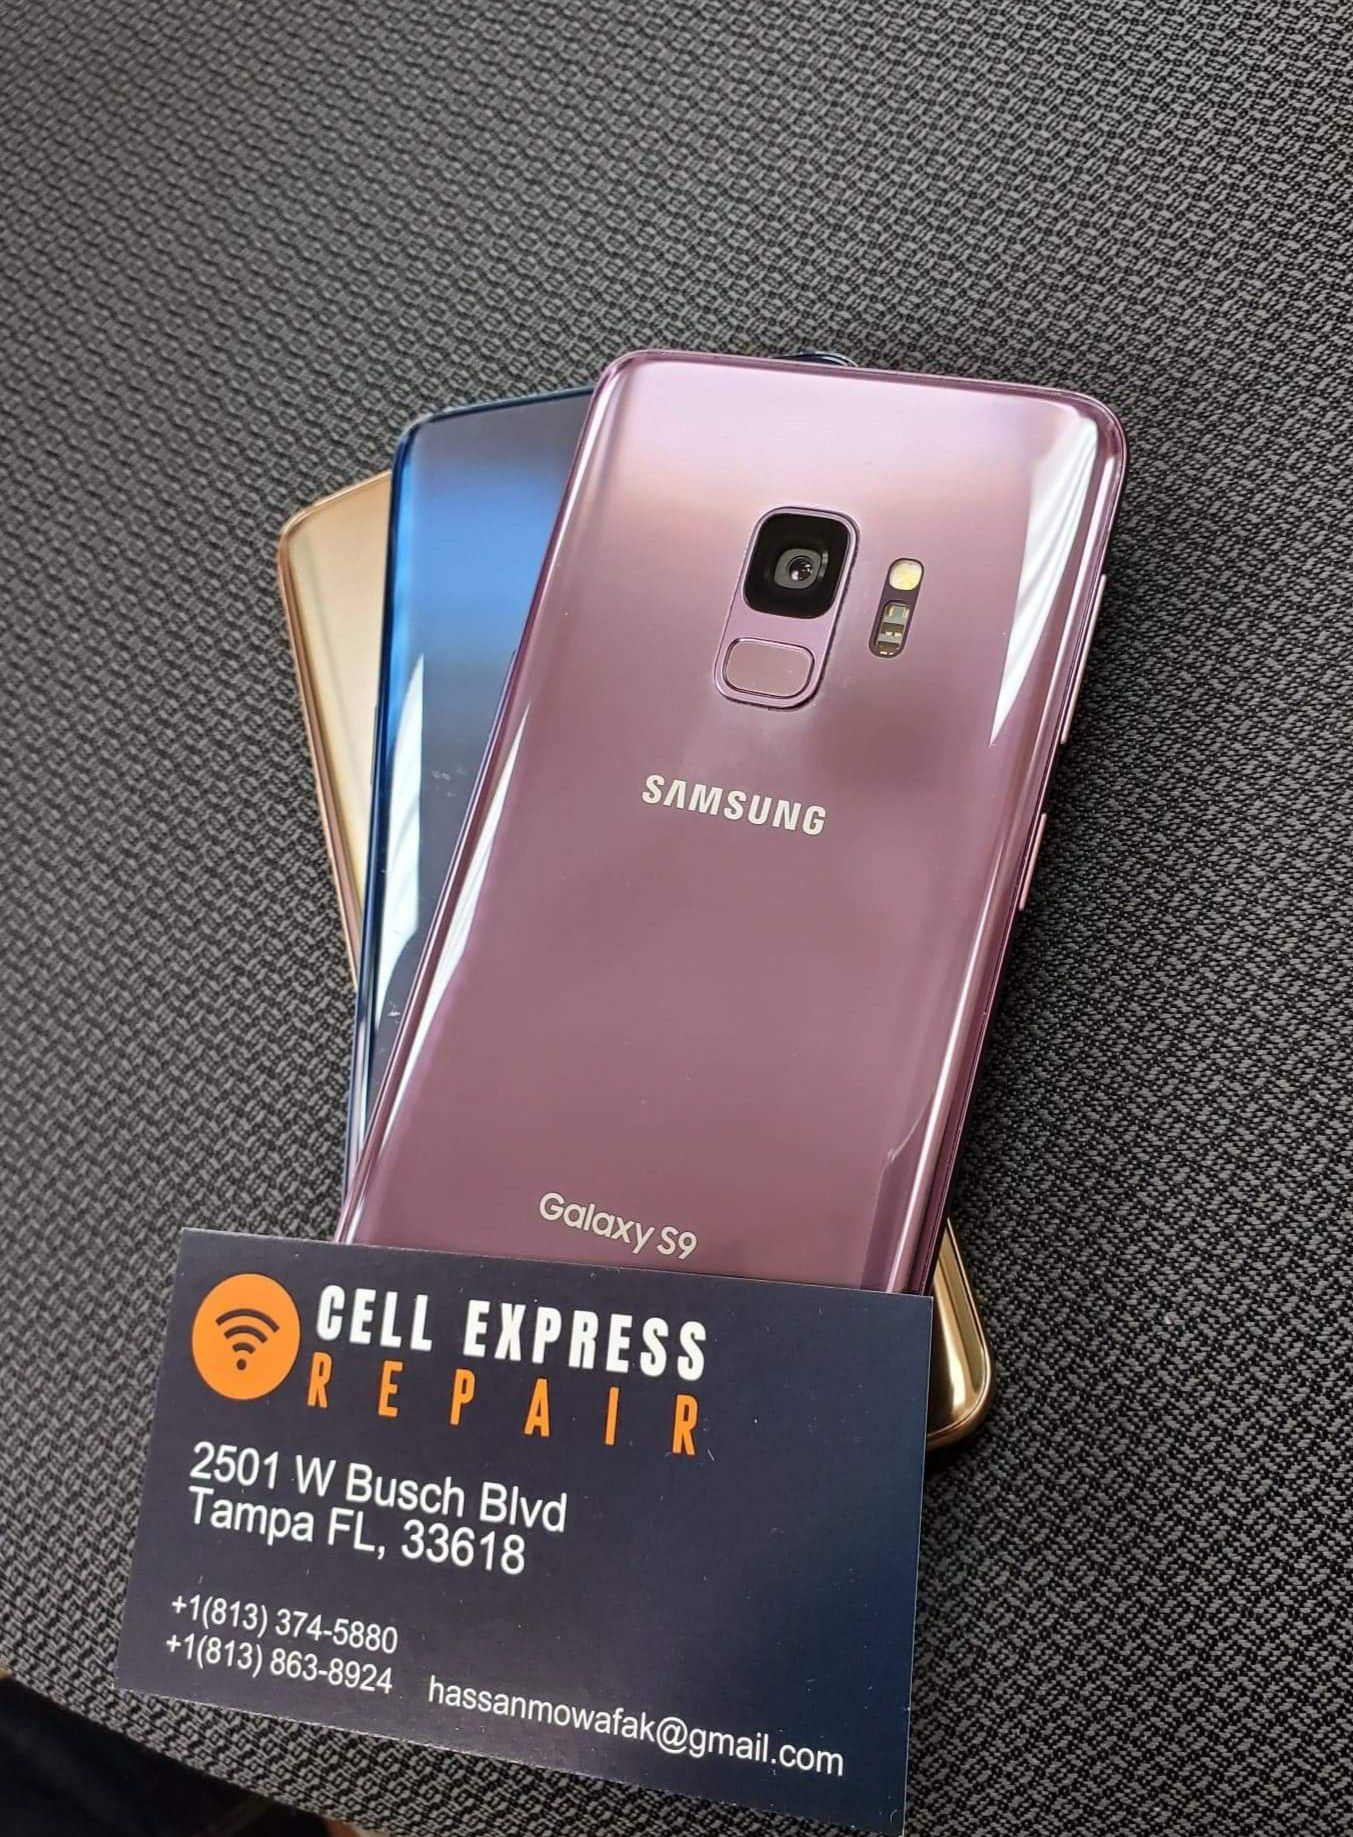 Samsung Galaxy s9 unlocked Like New Condition |With 30 Day Warranty